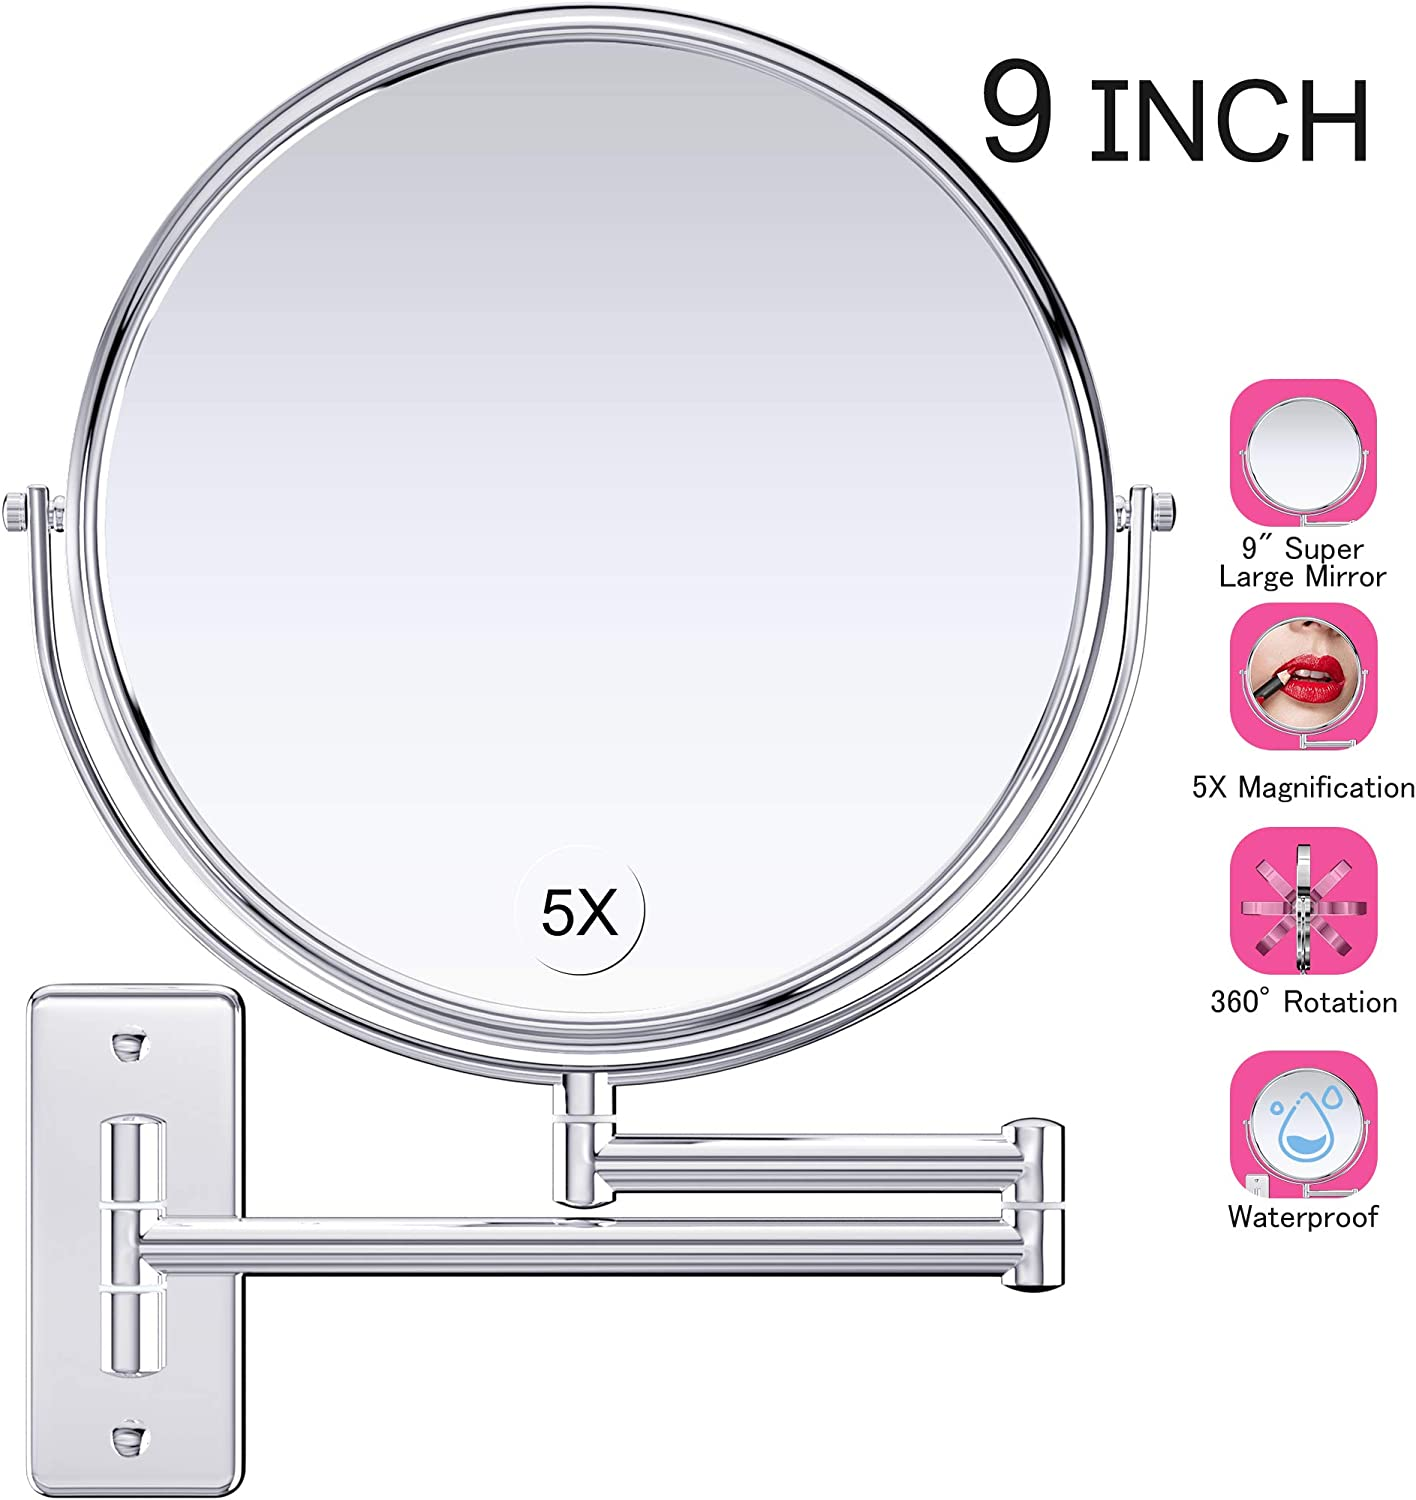 Beauty Planet 6 Inch 15X Magnifying Mirror, Two Sided Mirror, 15X 1X Magnification, Makeup Mirror with Handheld Stand,Use for Makeup Application, Tweezing, Blackhead Blemish Removal. Silver